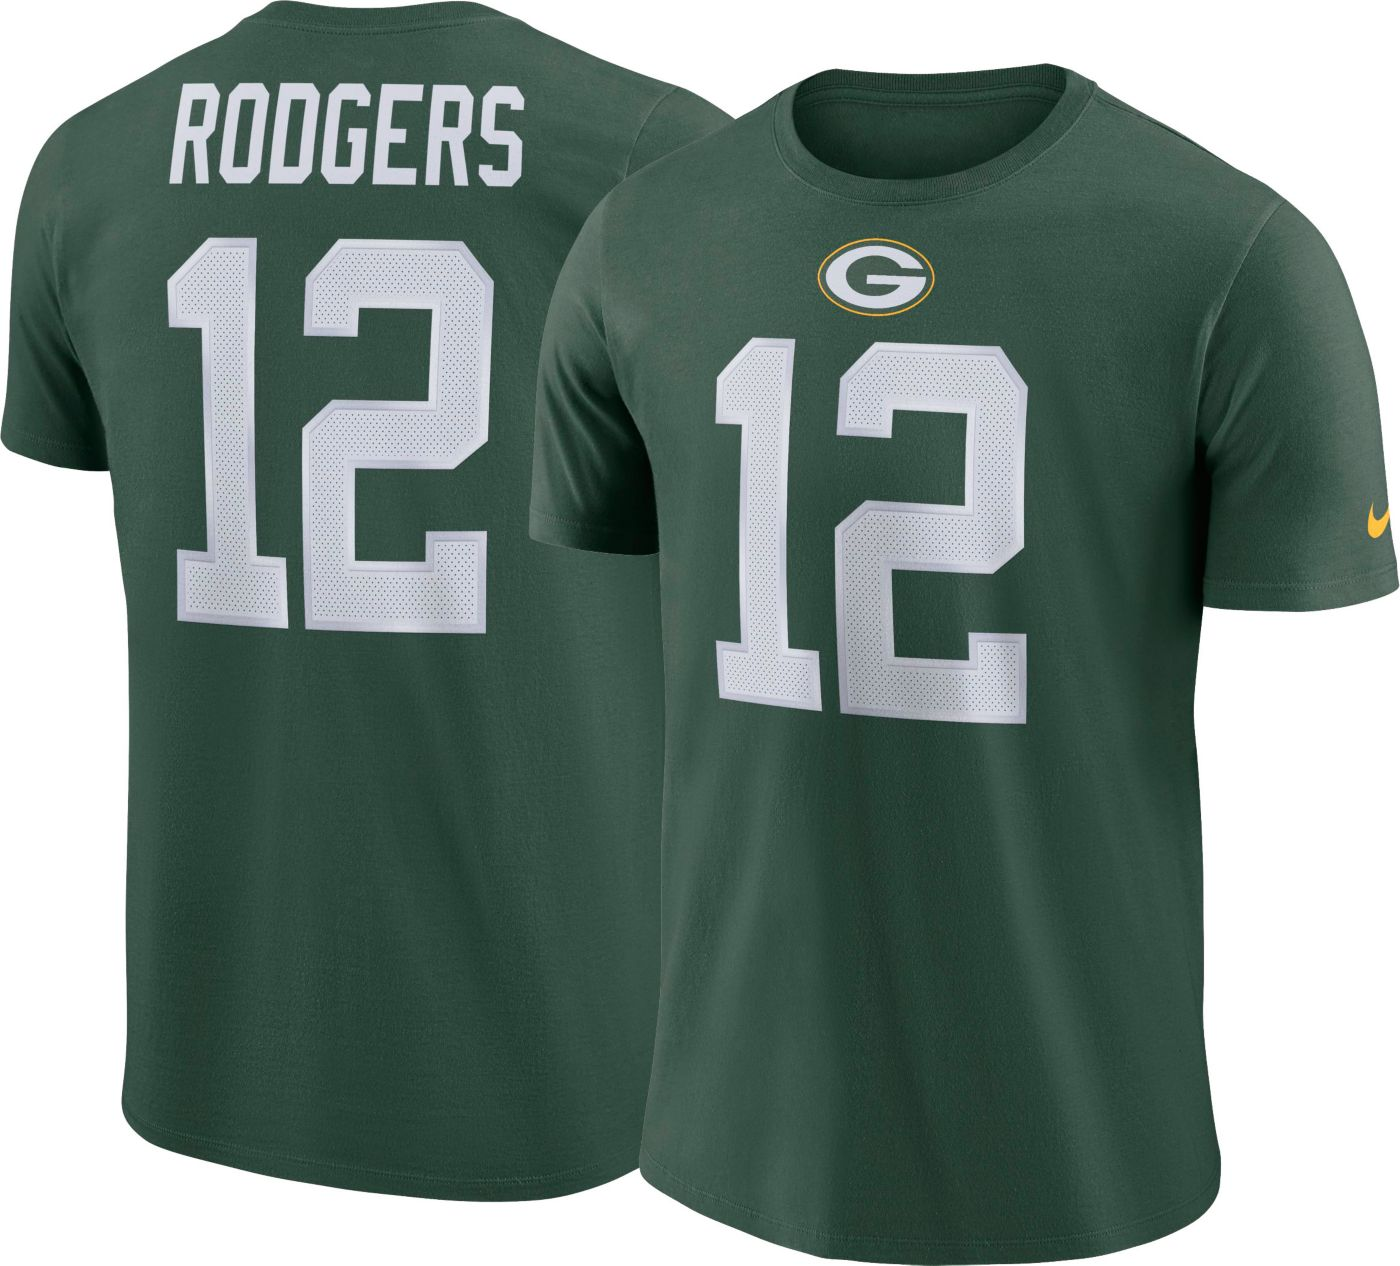 Aaron Rodgers #12 Nike Men's Green Bay Packers Pride Green T-Shirt